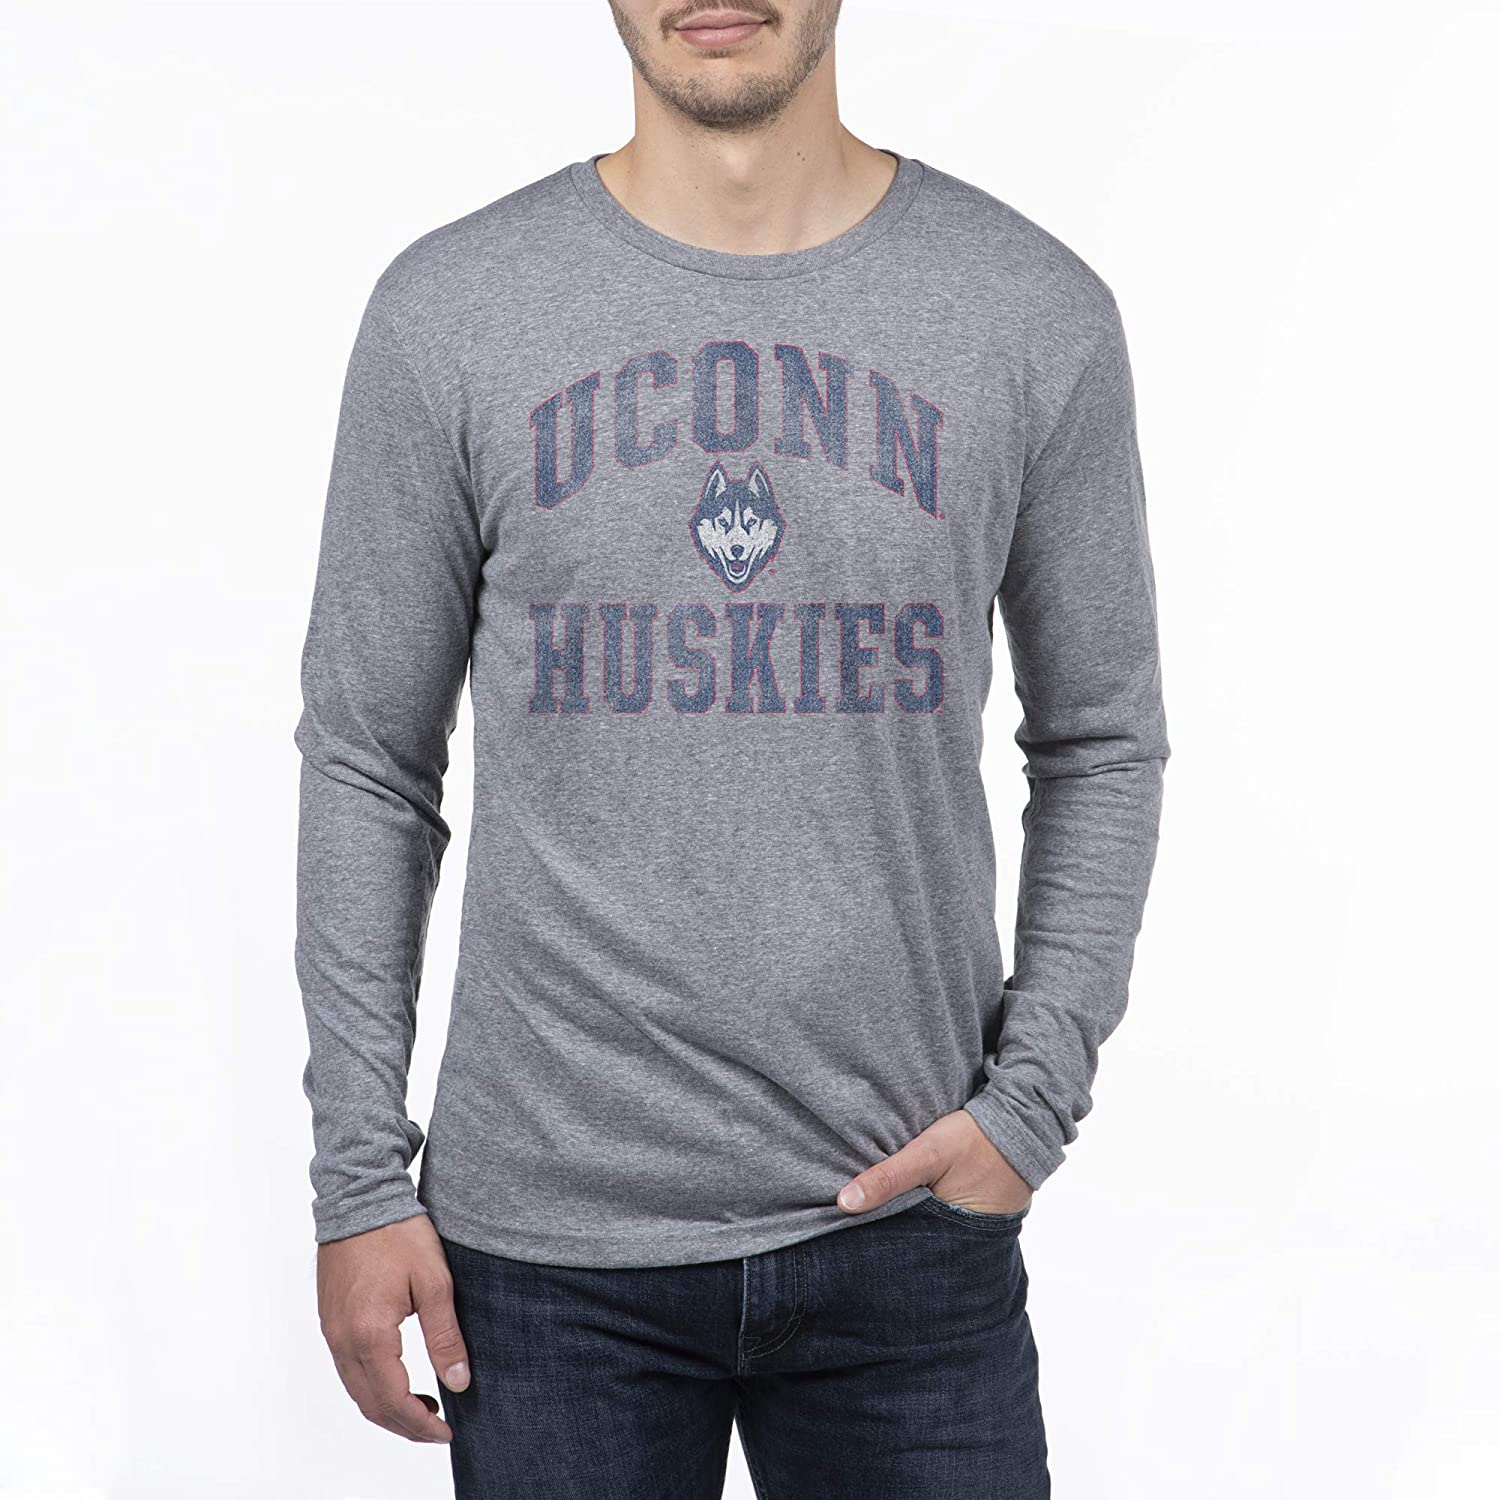 Top of the World Men's Modern Fit Premium Tri-Blend Long Sleeve Gray Heather Distressed Mascot Arch Tee